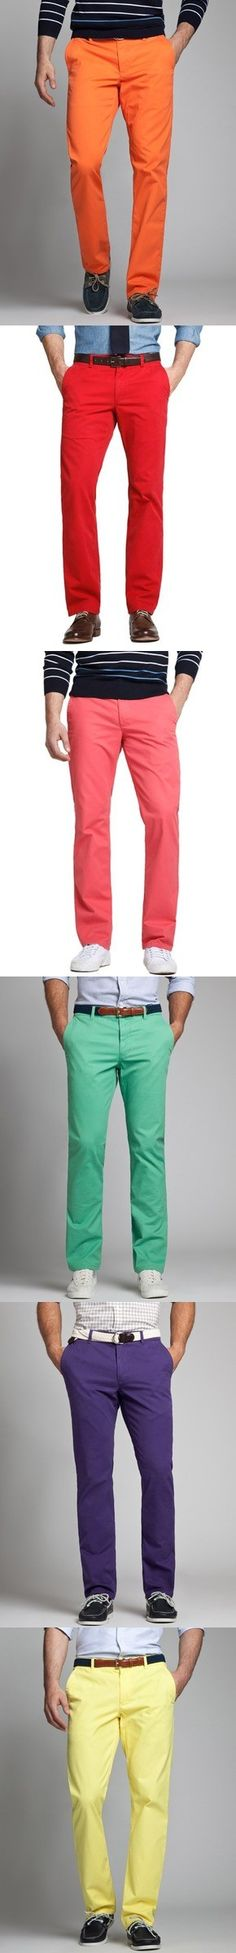 #Chinos #Trousers #Orange #Red #Pink #Green #Blue #Yellow #Rainbow #Preppy